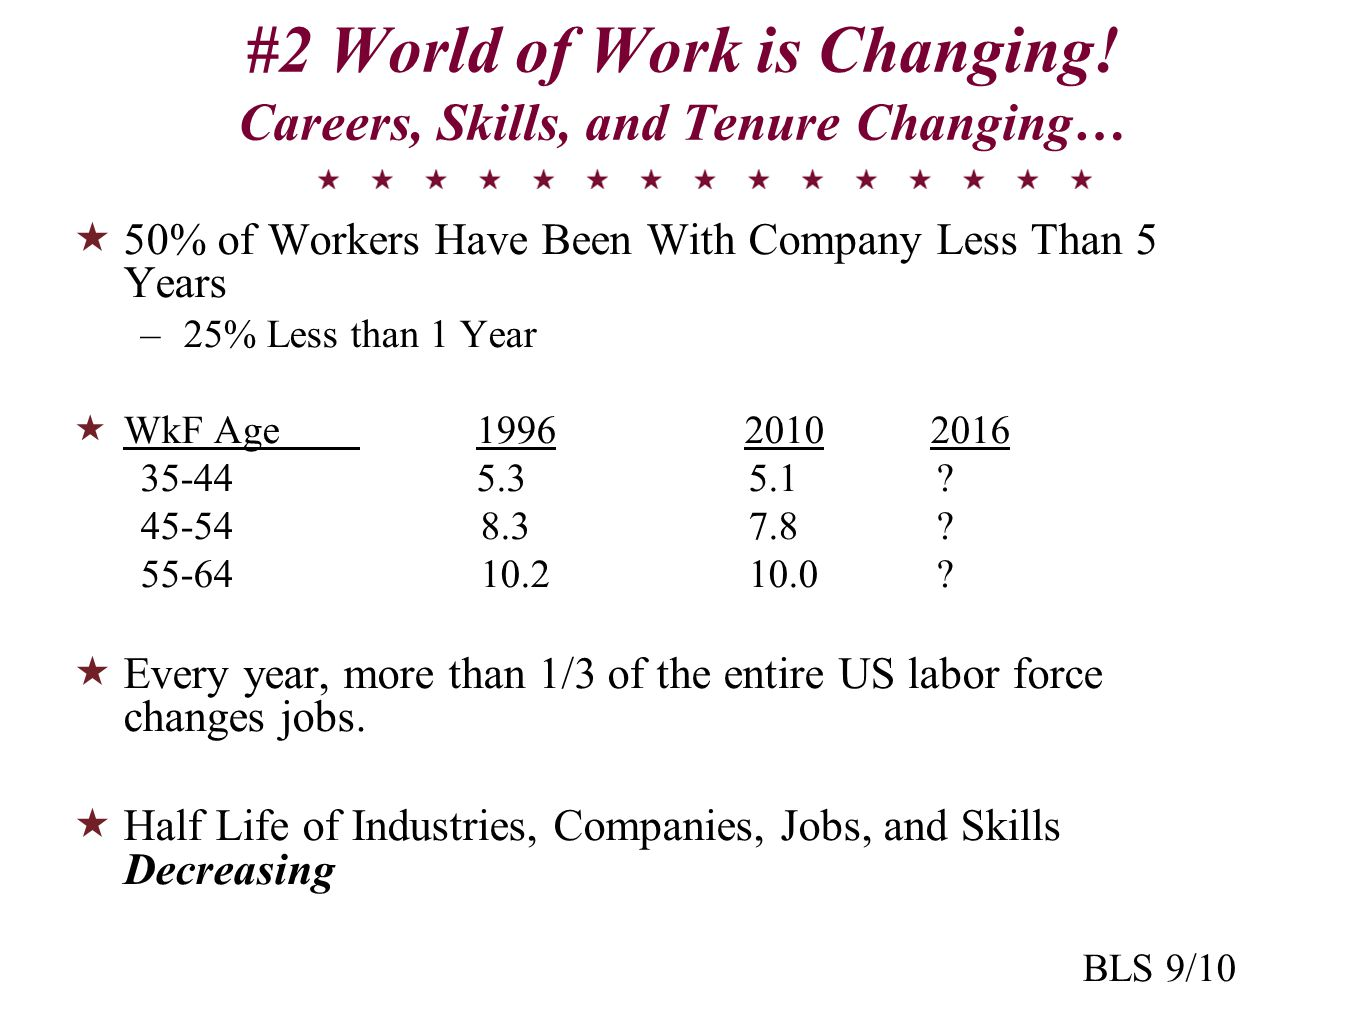 #2 World of Work is Changing.